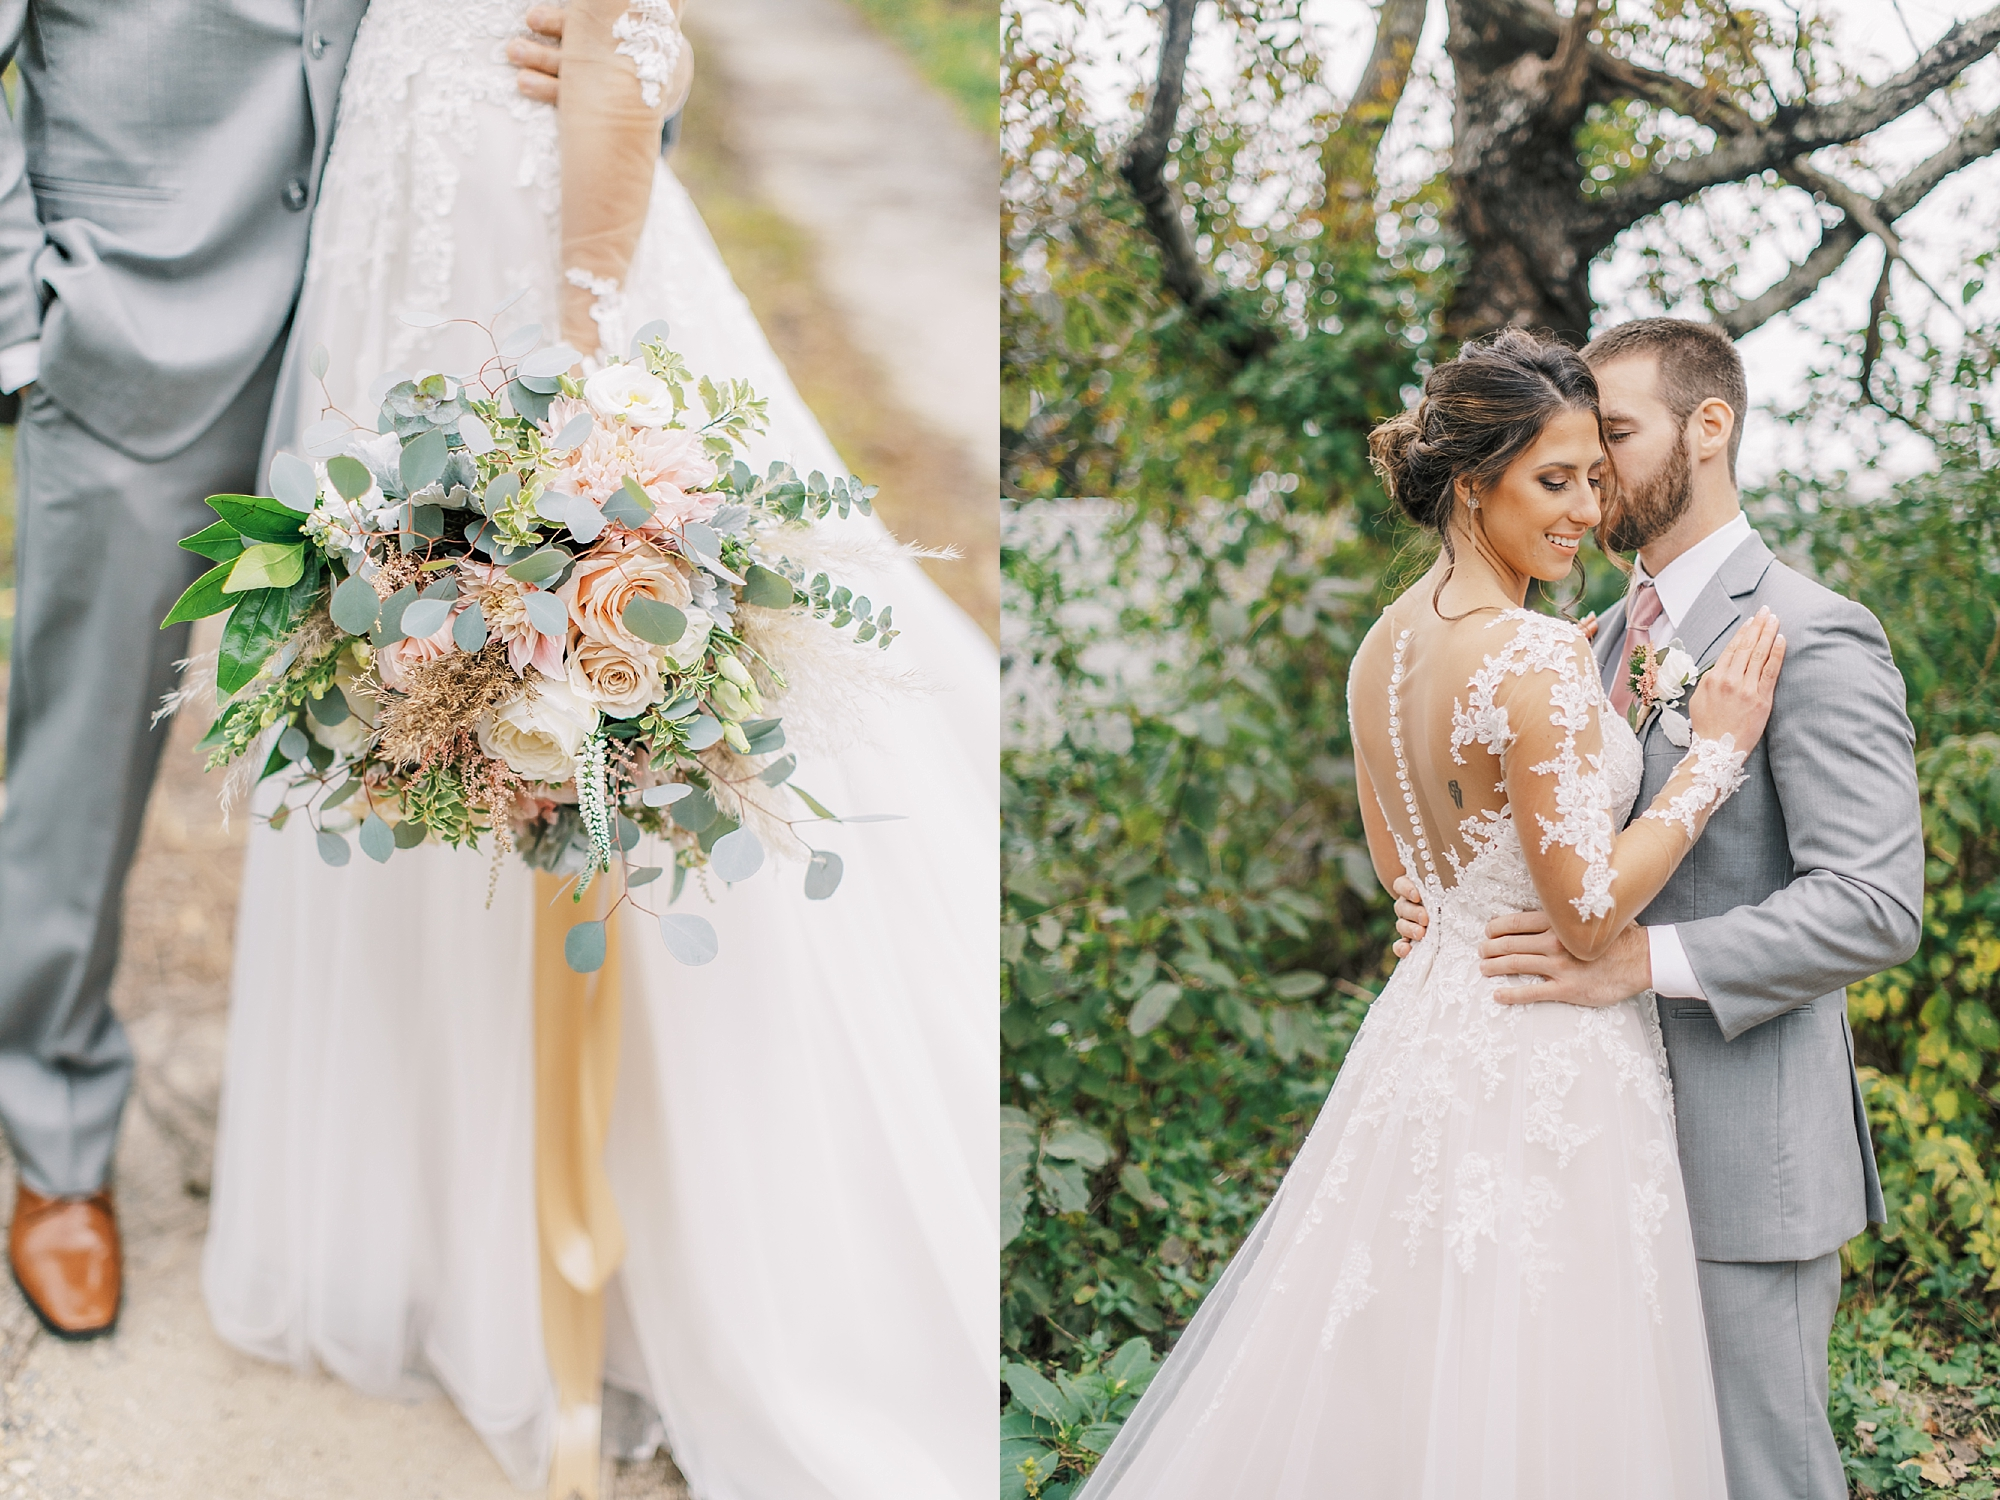 Sweet Garden Wedding Photography Abbie Holmes Estate in Cape May NJ by Magdalena Studios 0050